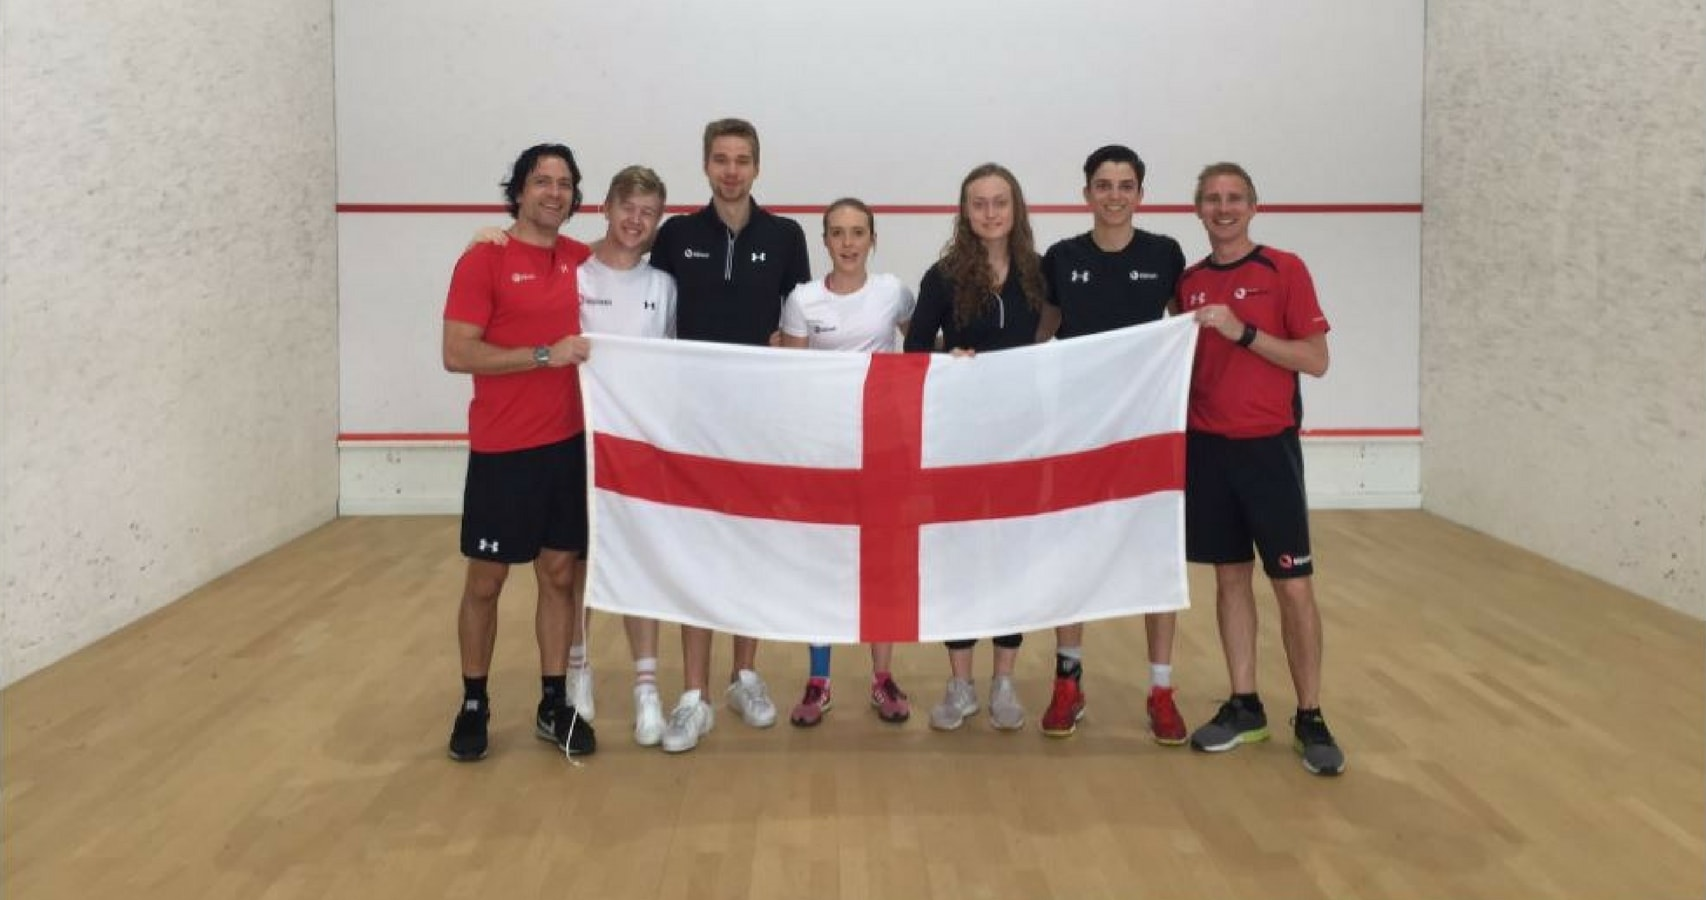 Team England defeated competition from Germany, Ireland, Austria and Portugal to win the European Team Championships in Lisbon